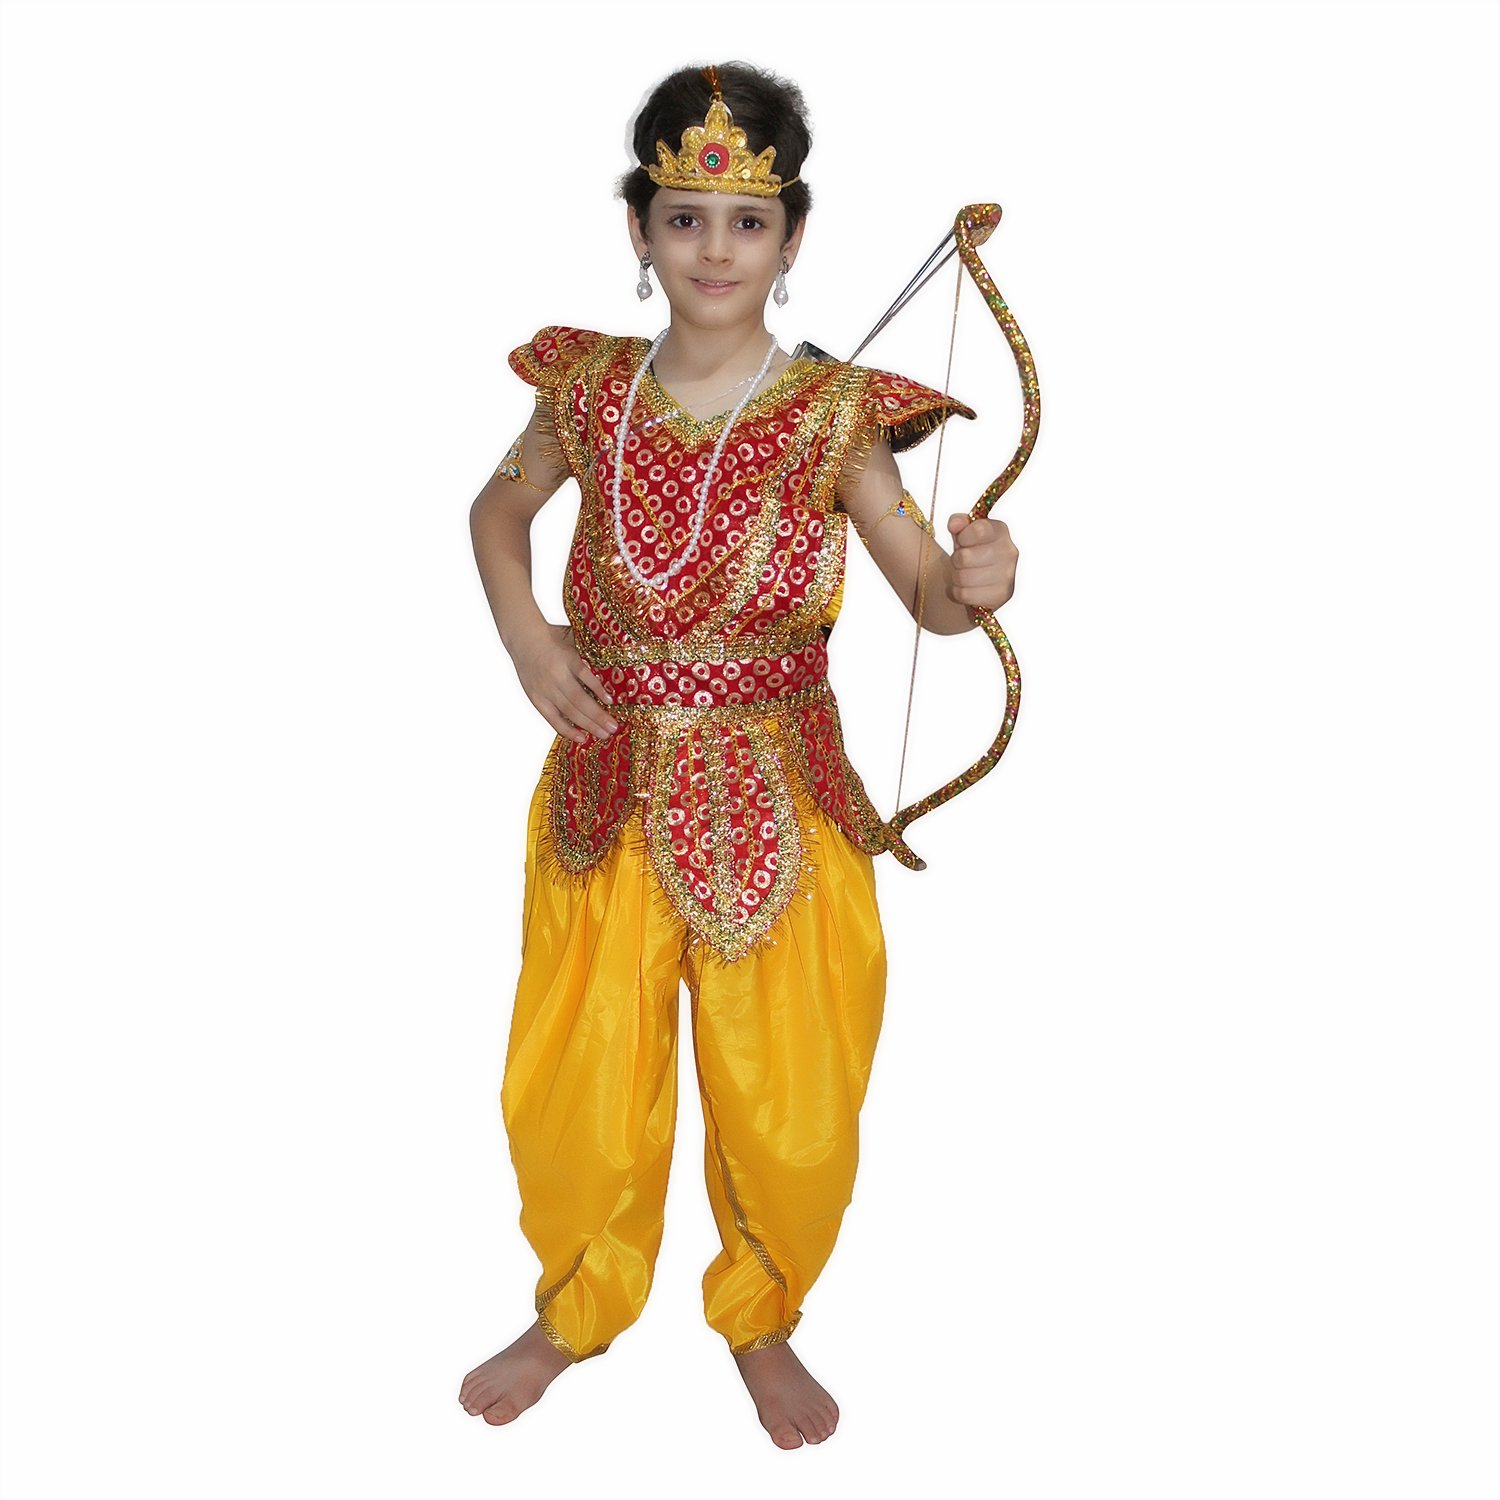 2574355a54 Buy Kaku Fancy Dresses Lord RamFancy Dress for Kids (Multicolour, 3-4  Years) Online at Low Prices in India - Amazon.in